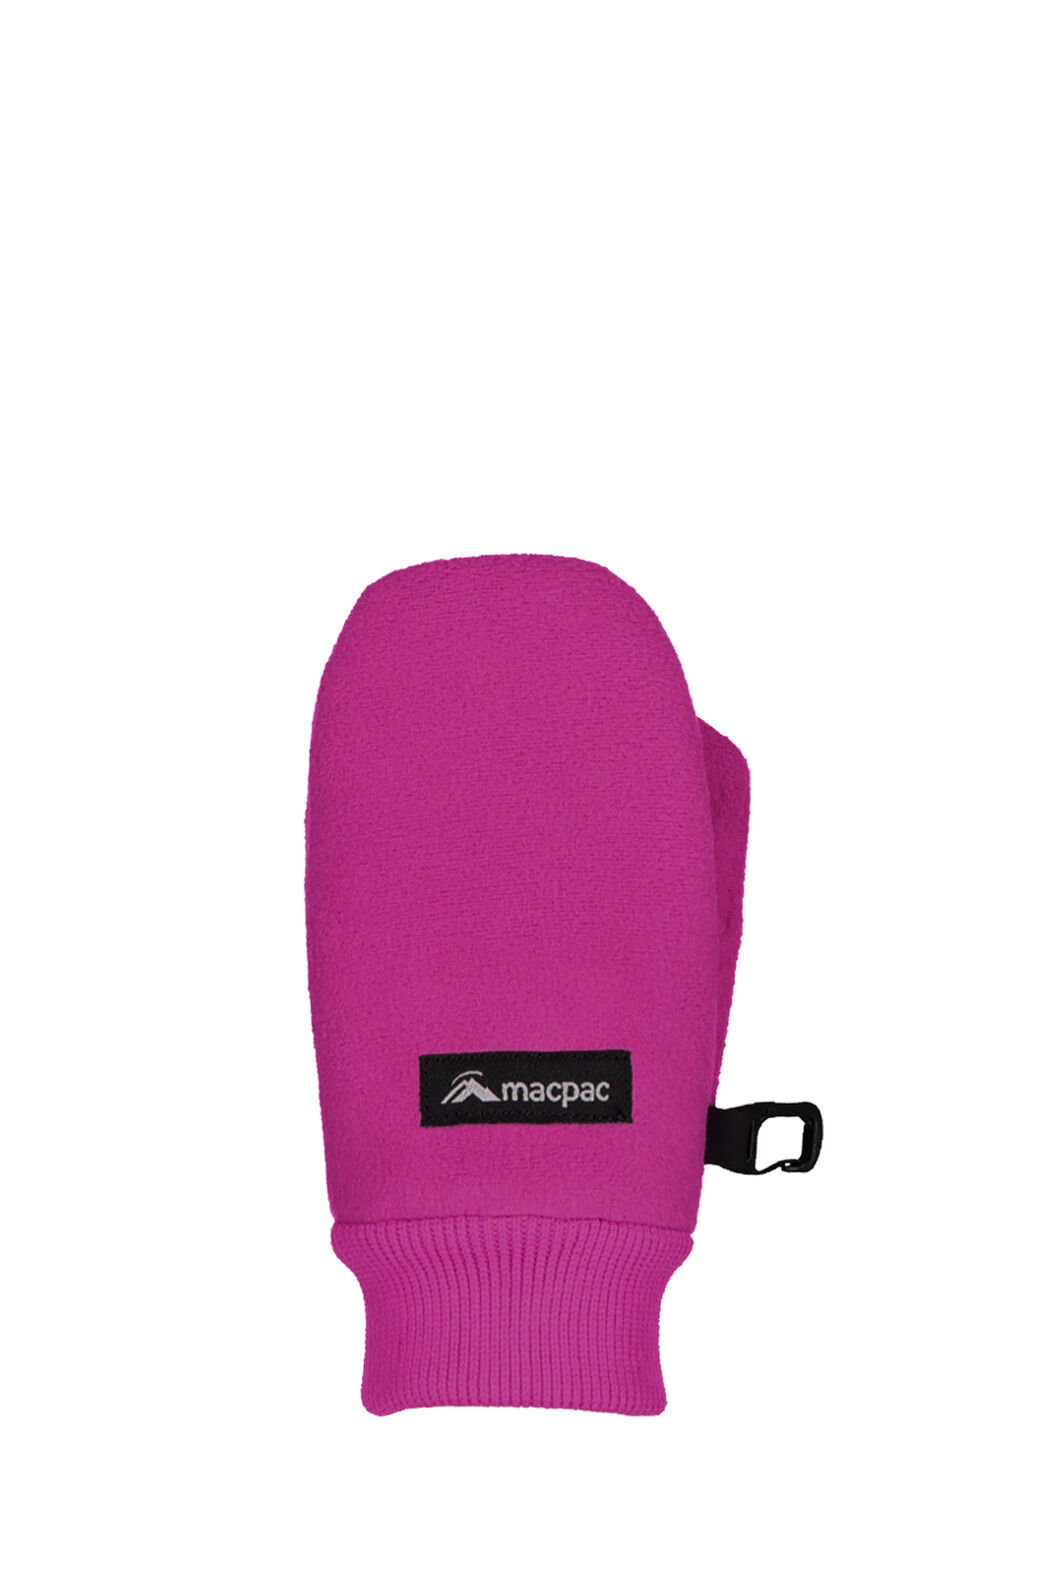 Macpac Fleece Mittens - Kids', Very Berry, hi-res